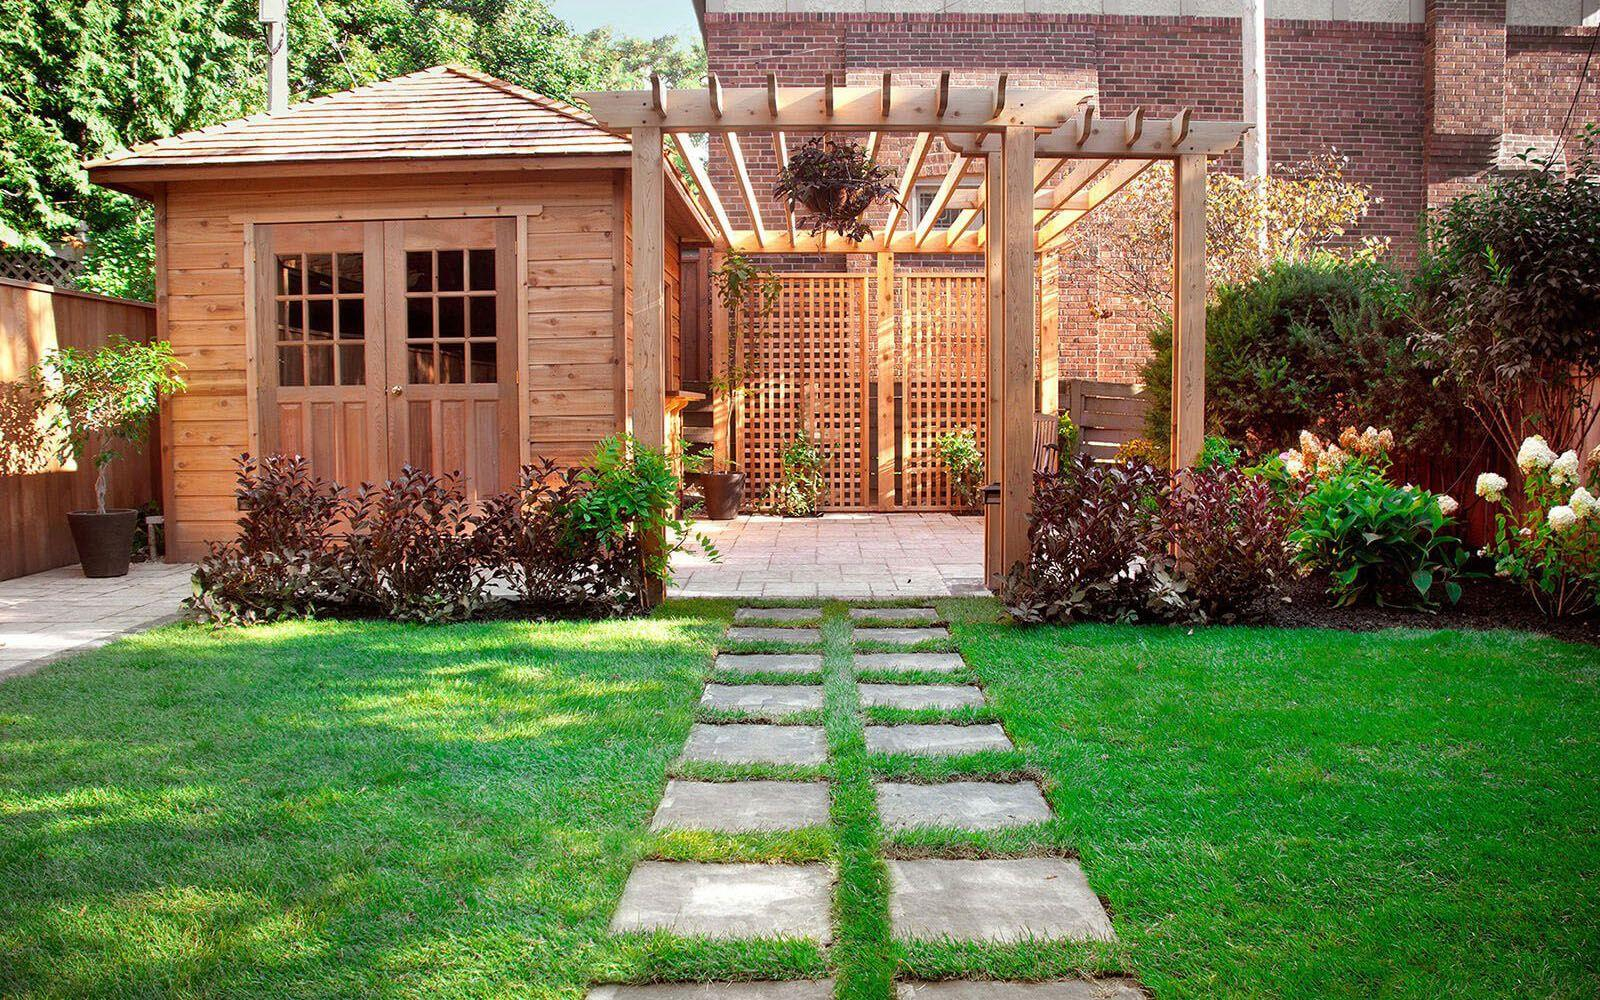 10 x 10 Sonoma shed with stunning landscape and trellis. ID number 164117